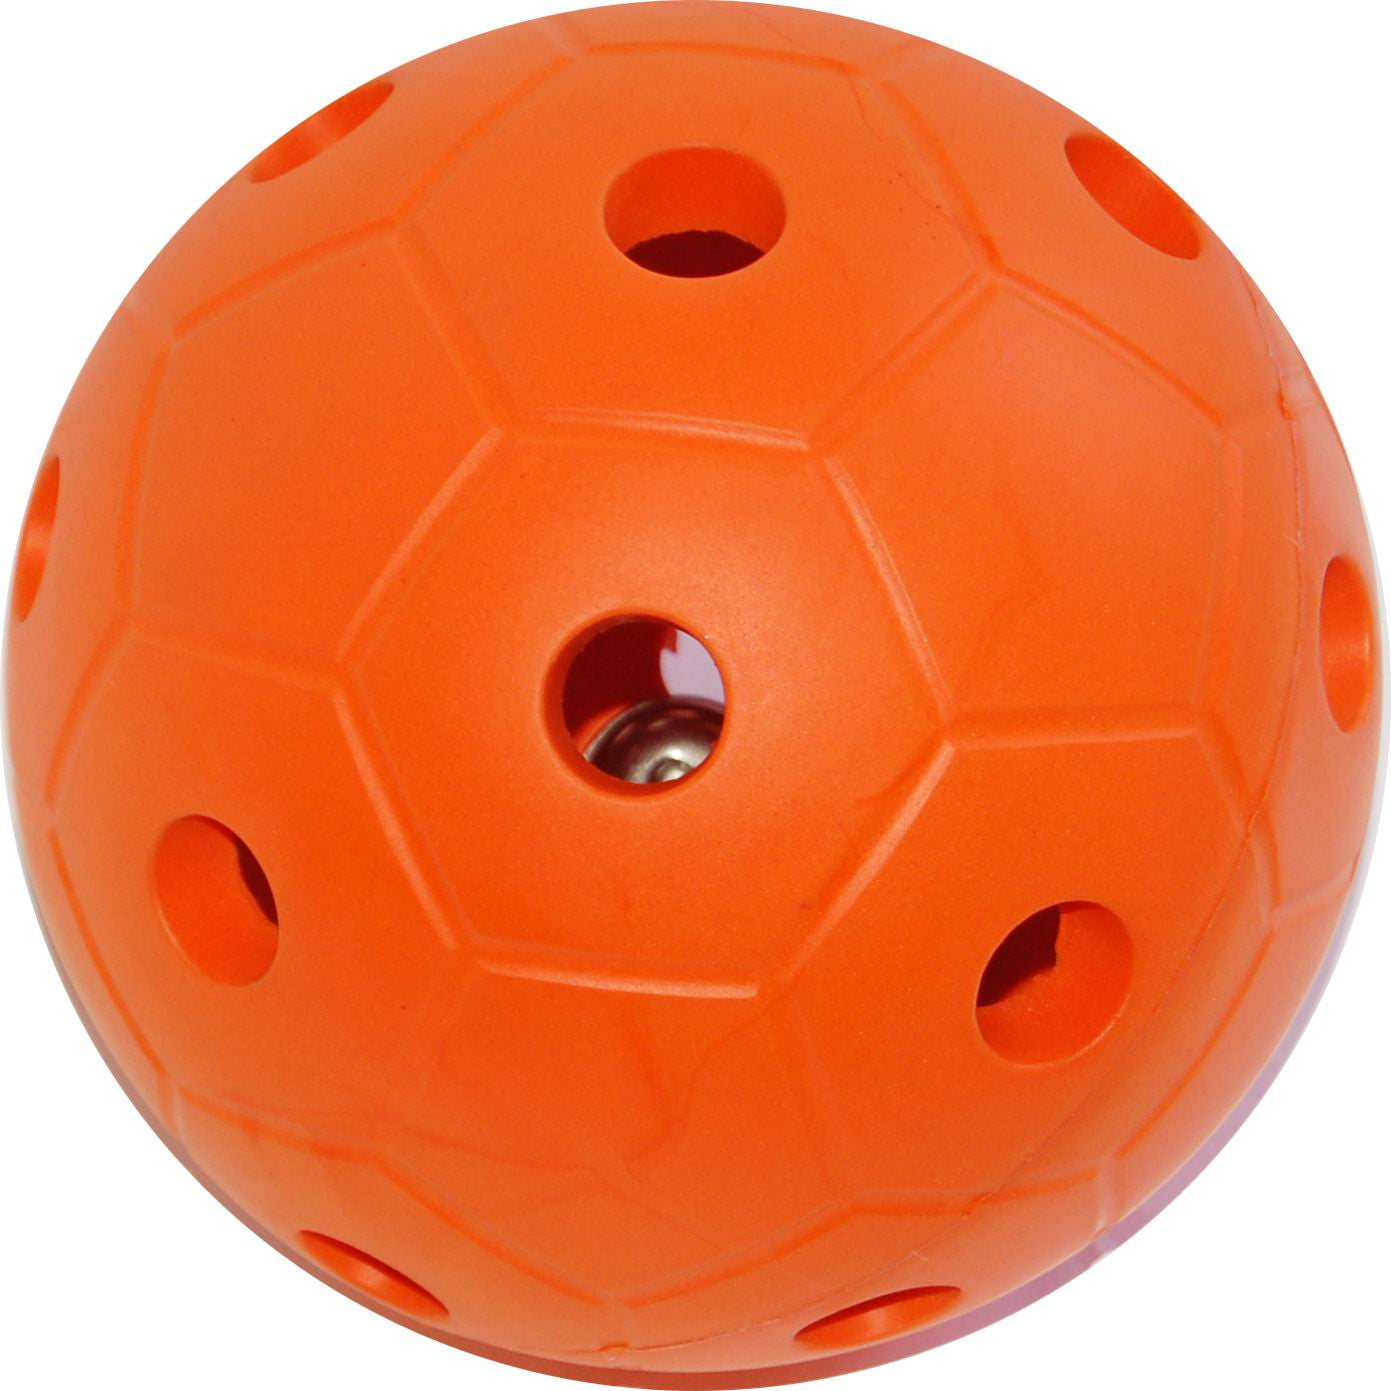 Goal Ball 8 Quot With Light Bell And 6 Blind Folds Spectrum